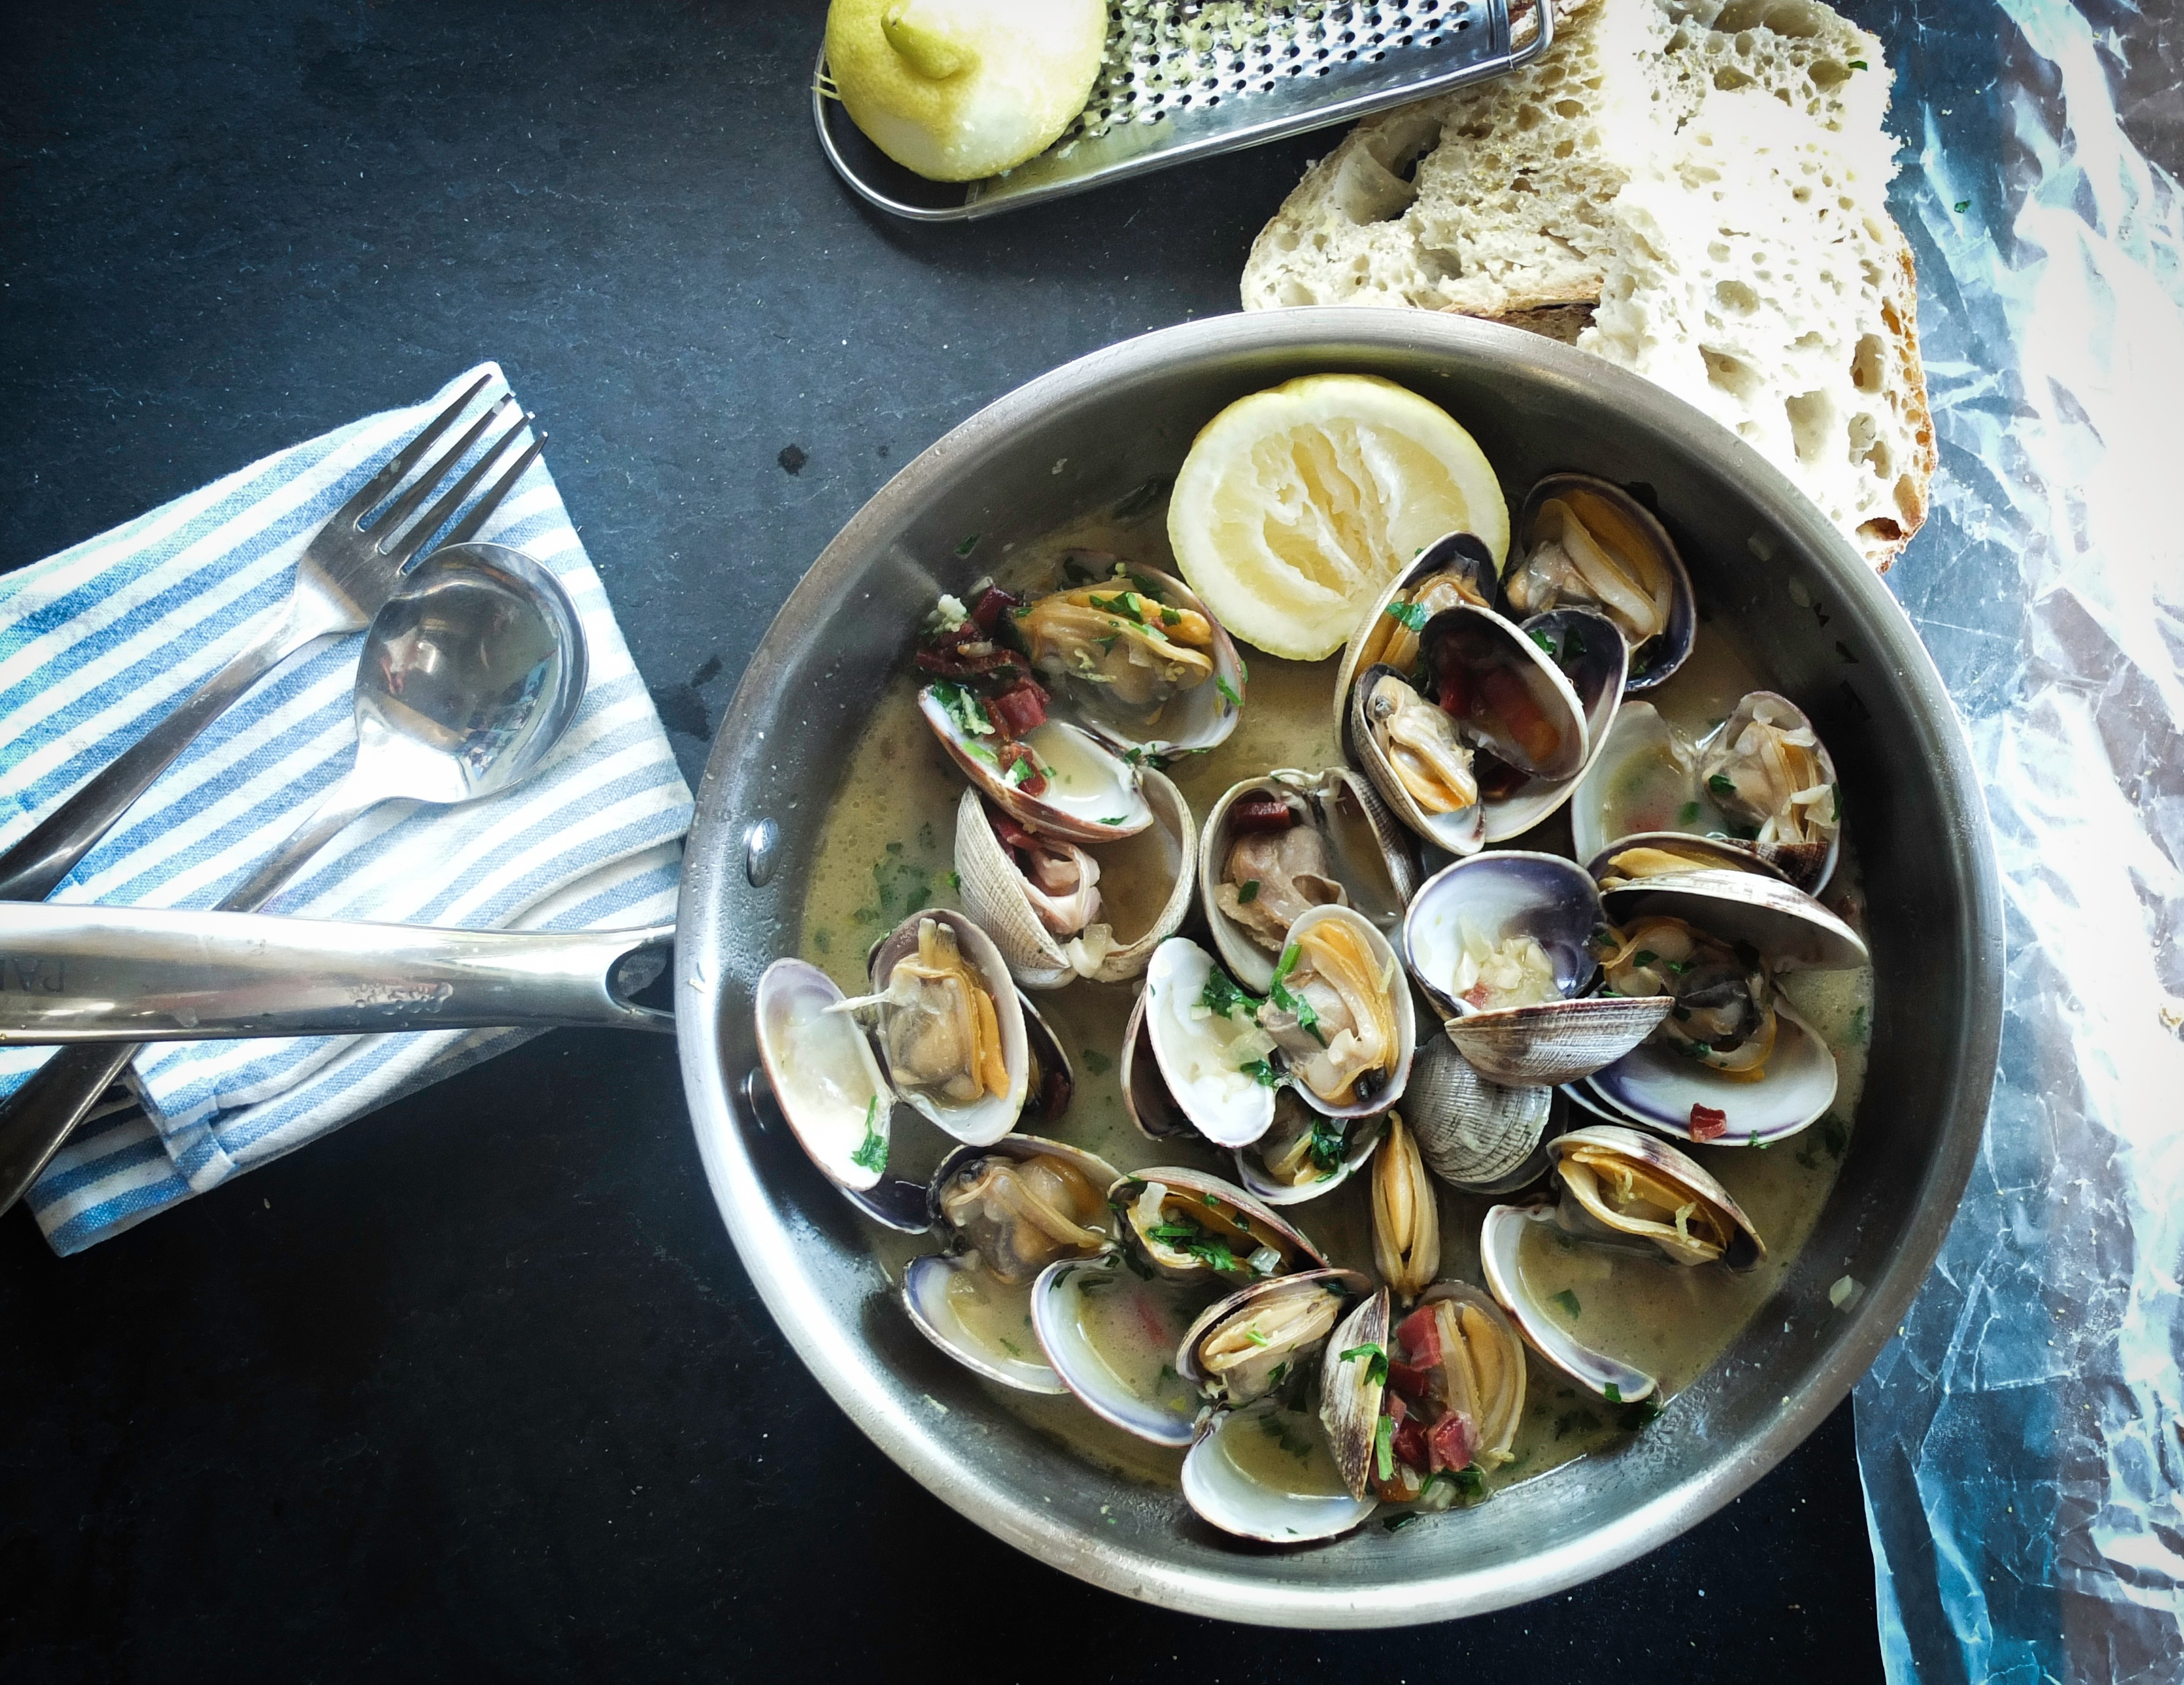 MyFrenchLife™ - MyFrenchLife.org - French food blogger - French recipes - clams